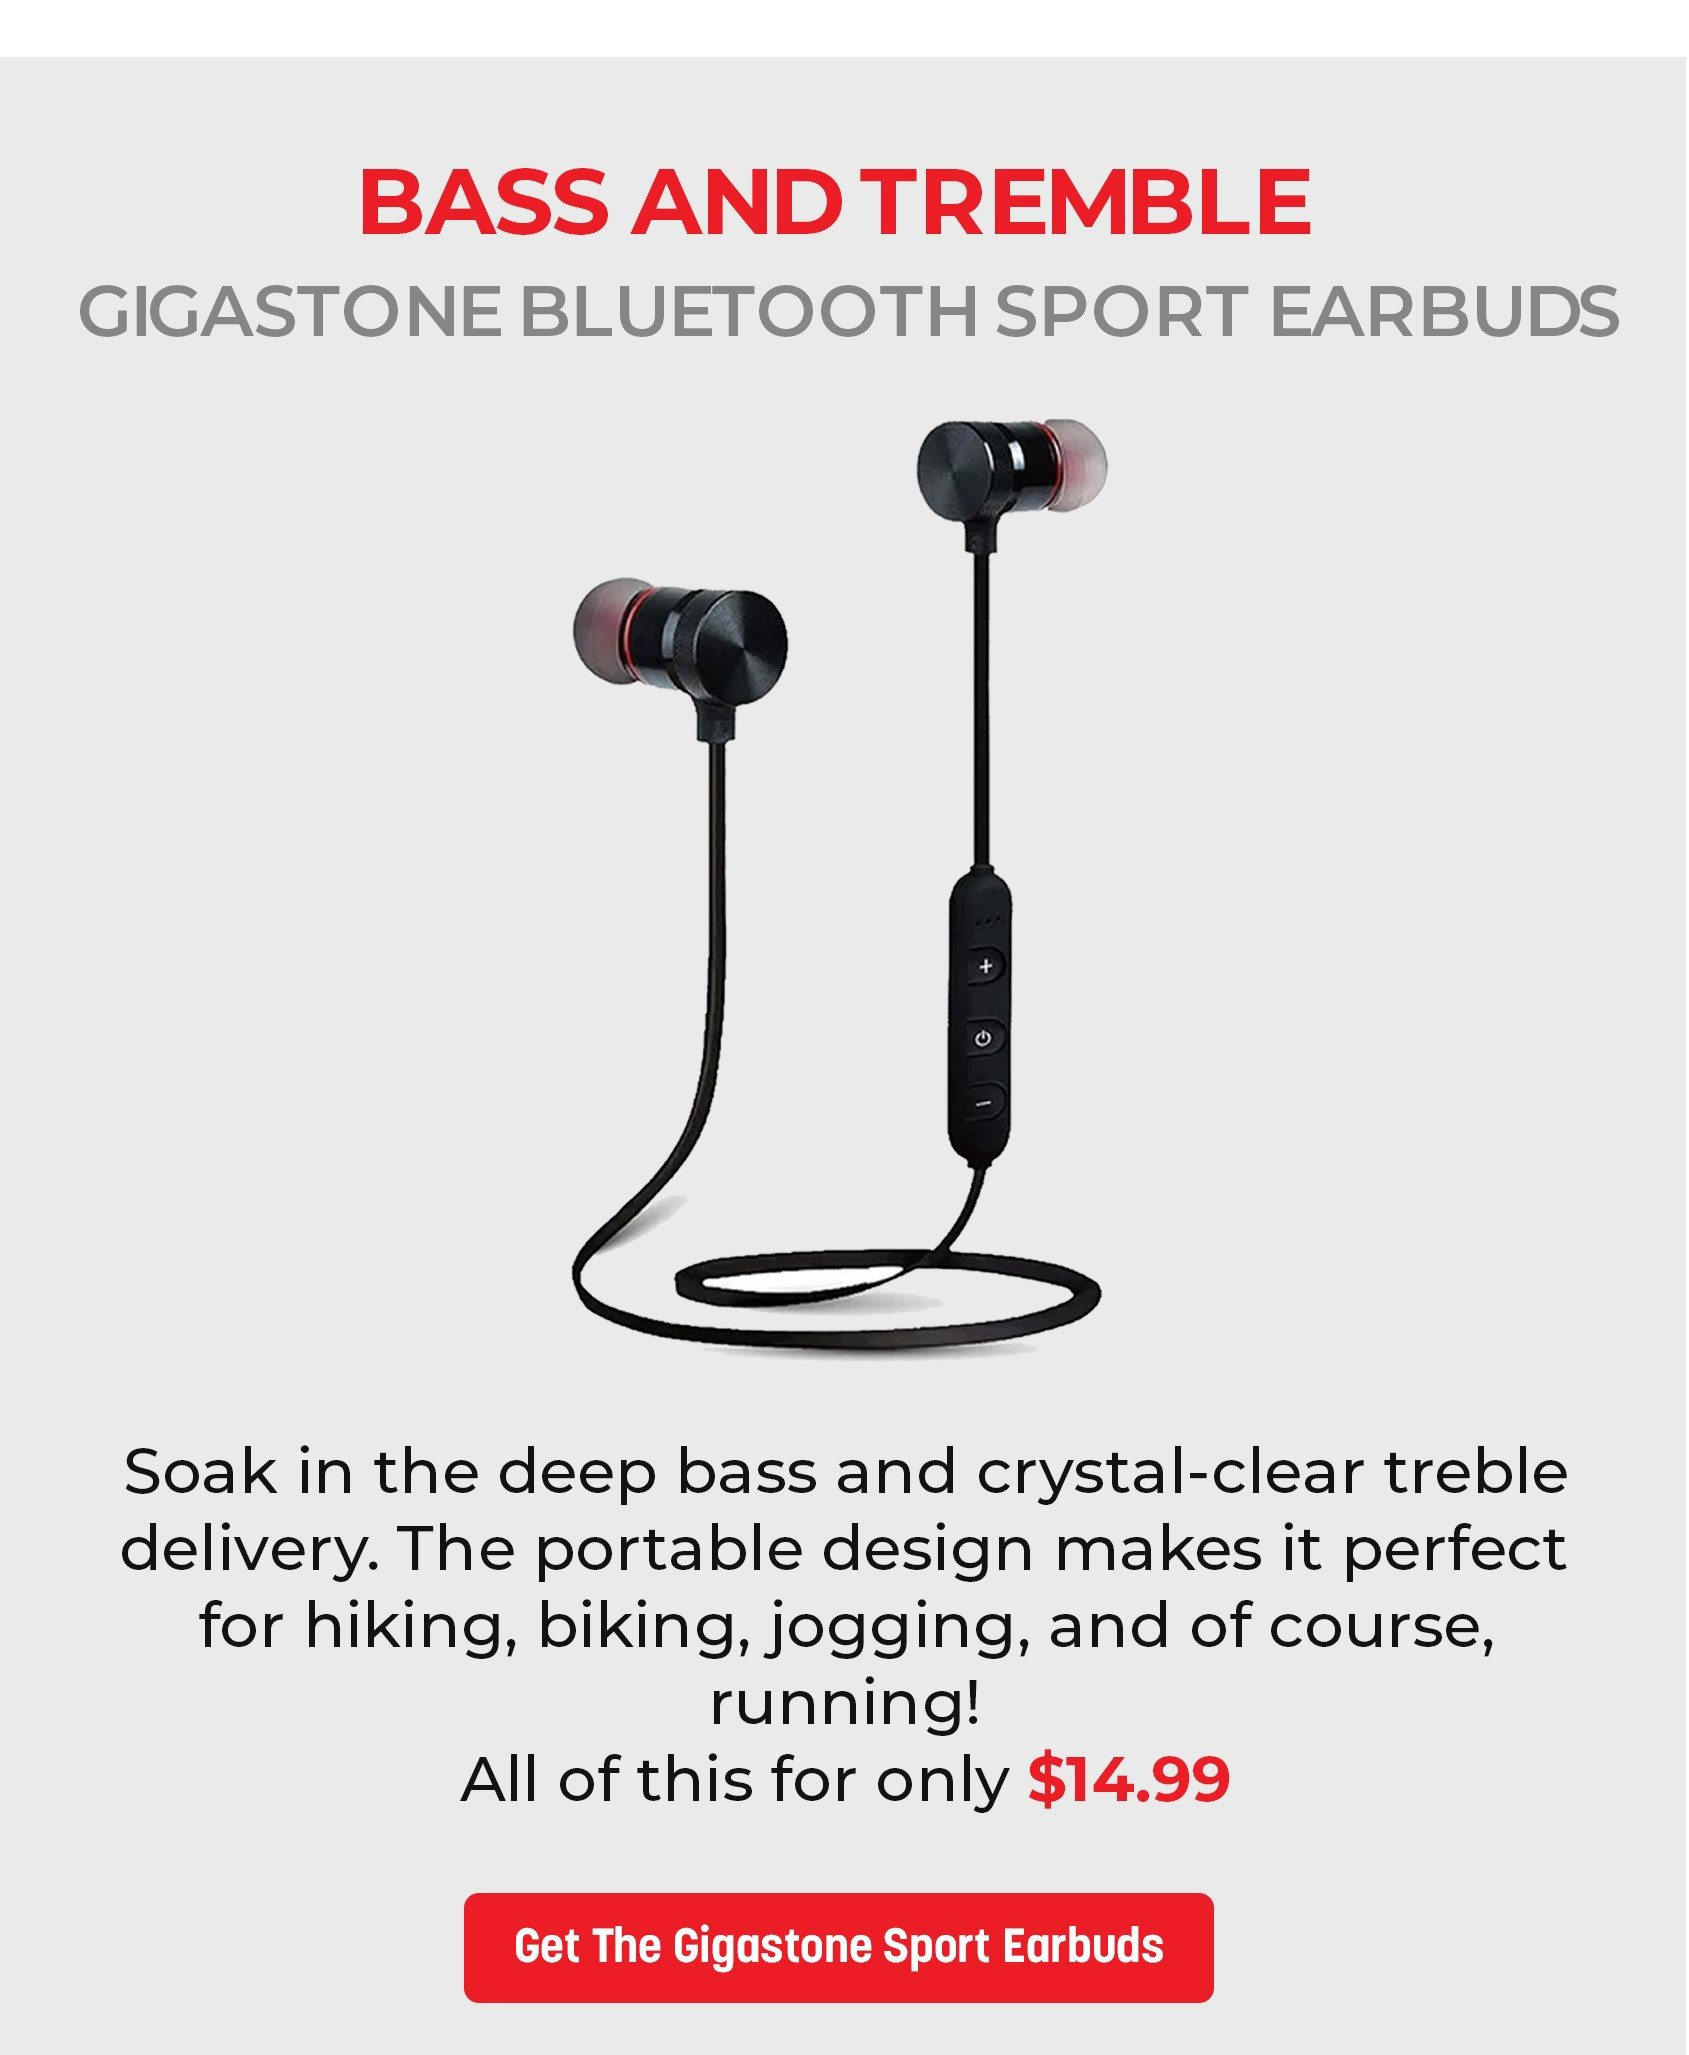 Gigastone Bluetooth Sport Earbuds with Magnetic Buds